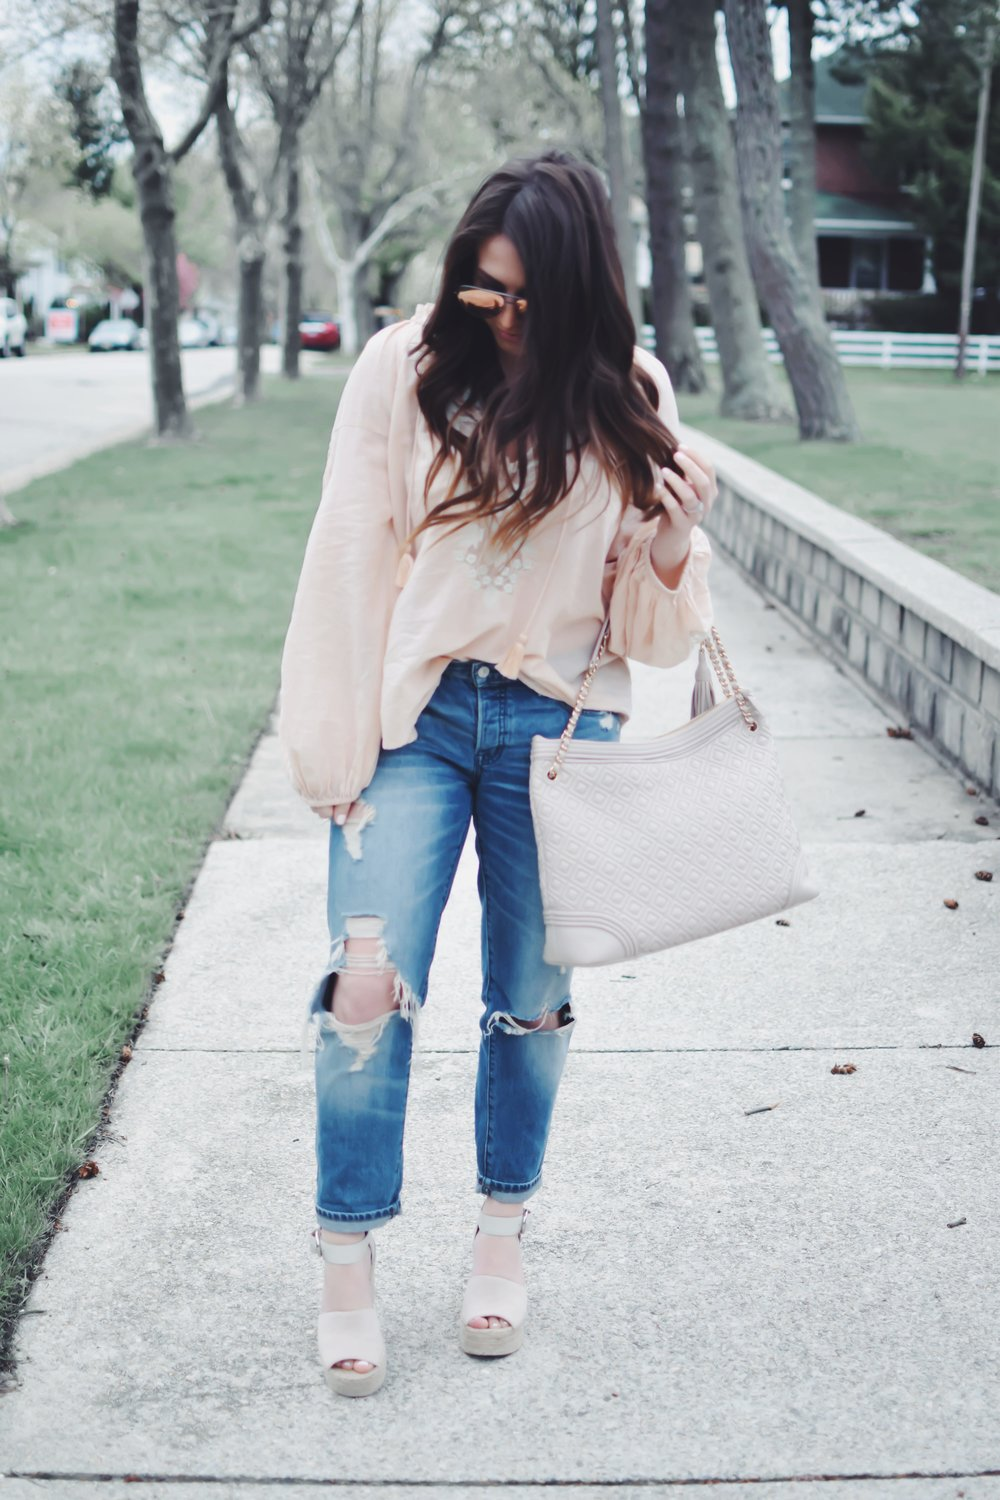 Boho Top with Lace Detail | Pine Barren Beauty | spring fashion, spring outfit idea, spring outfit inspiration, free people flowy top, Abercrombie distressed denim, Marc fisher wedges, tory burch handbag